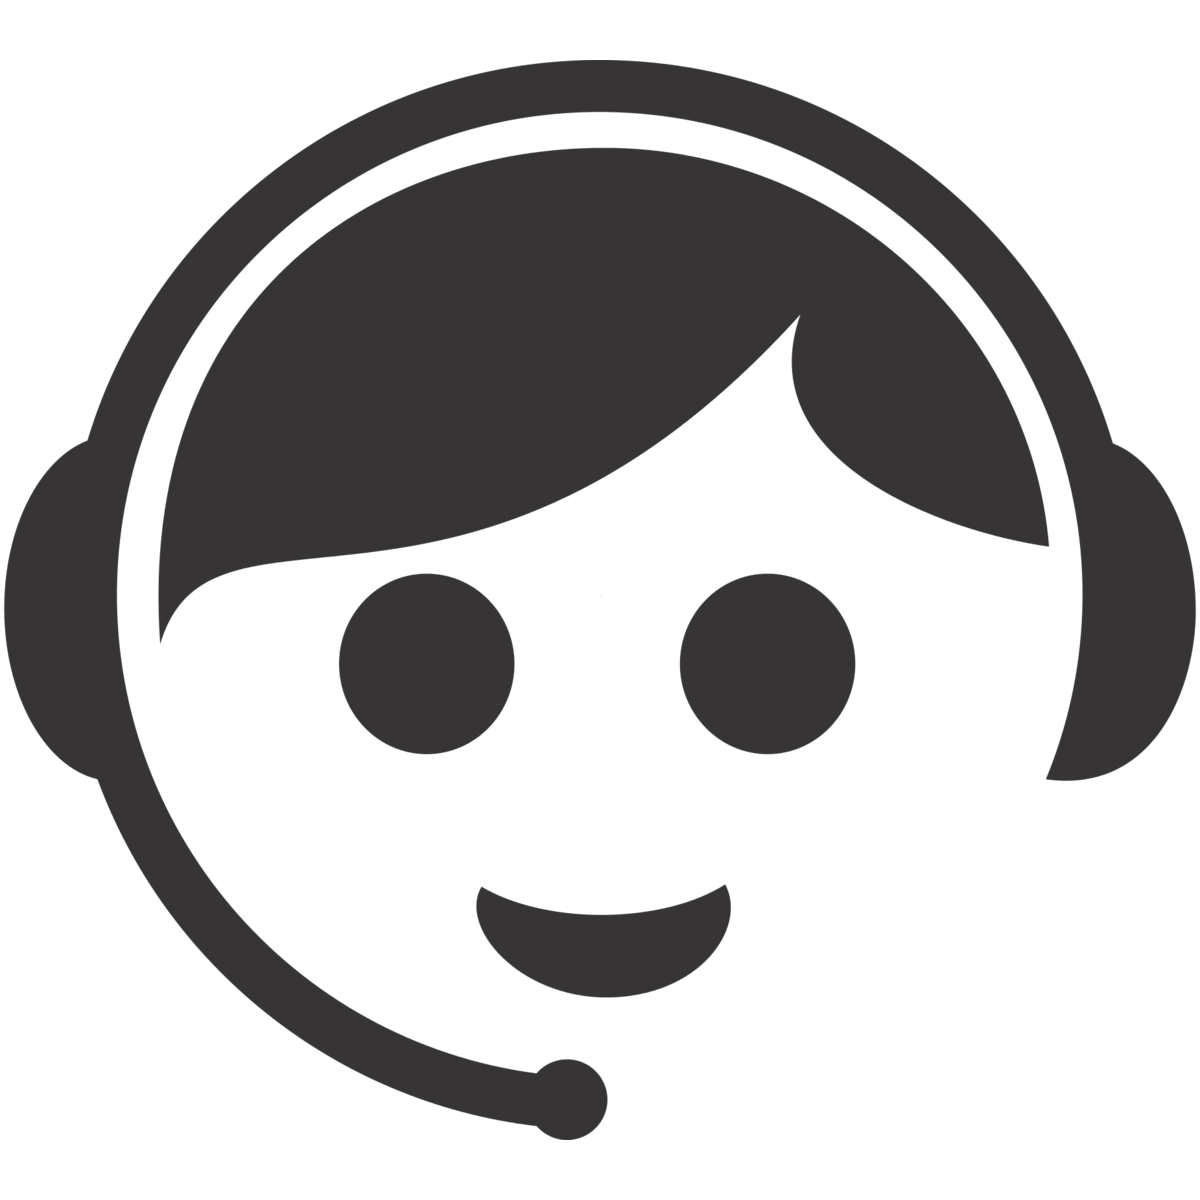 Customer Service Icon Png